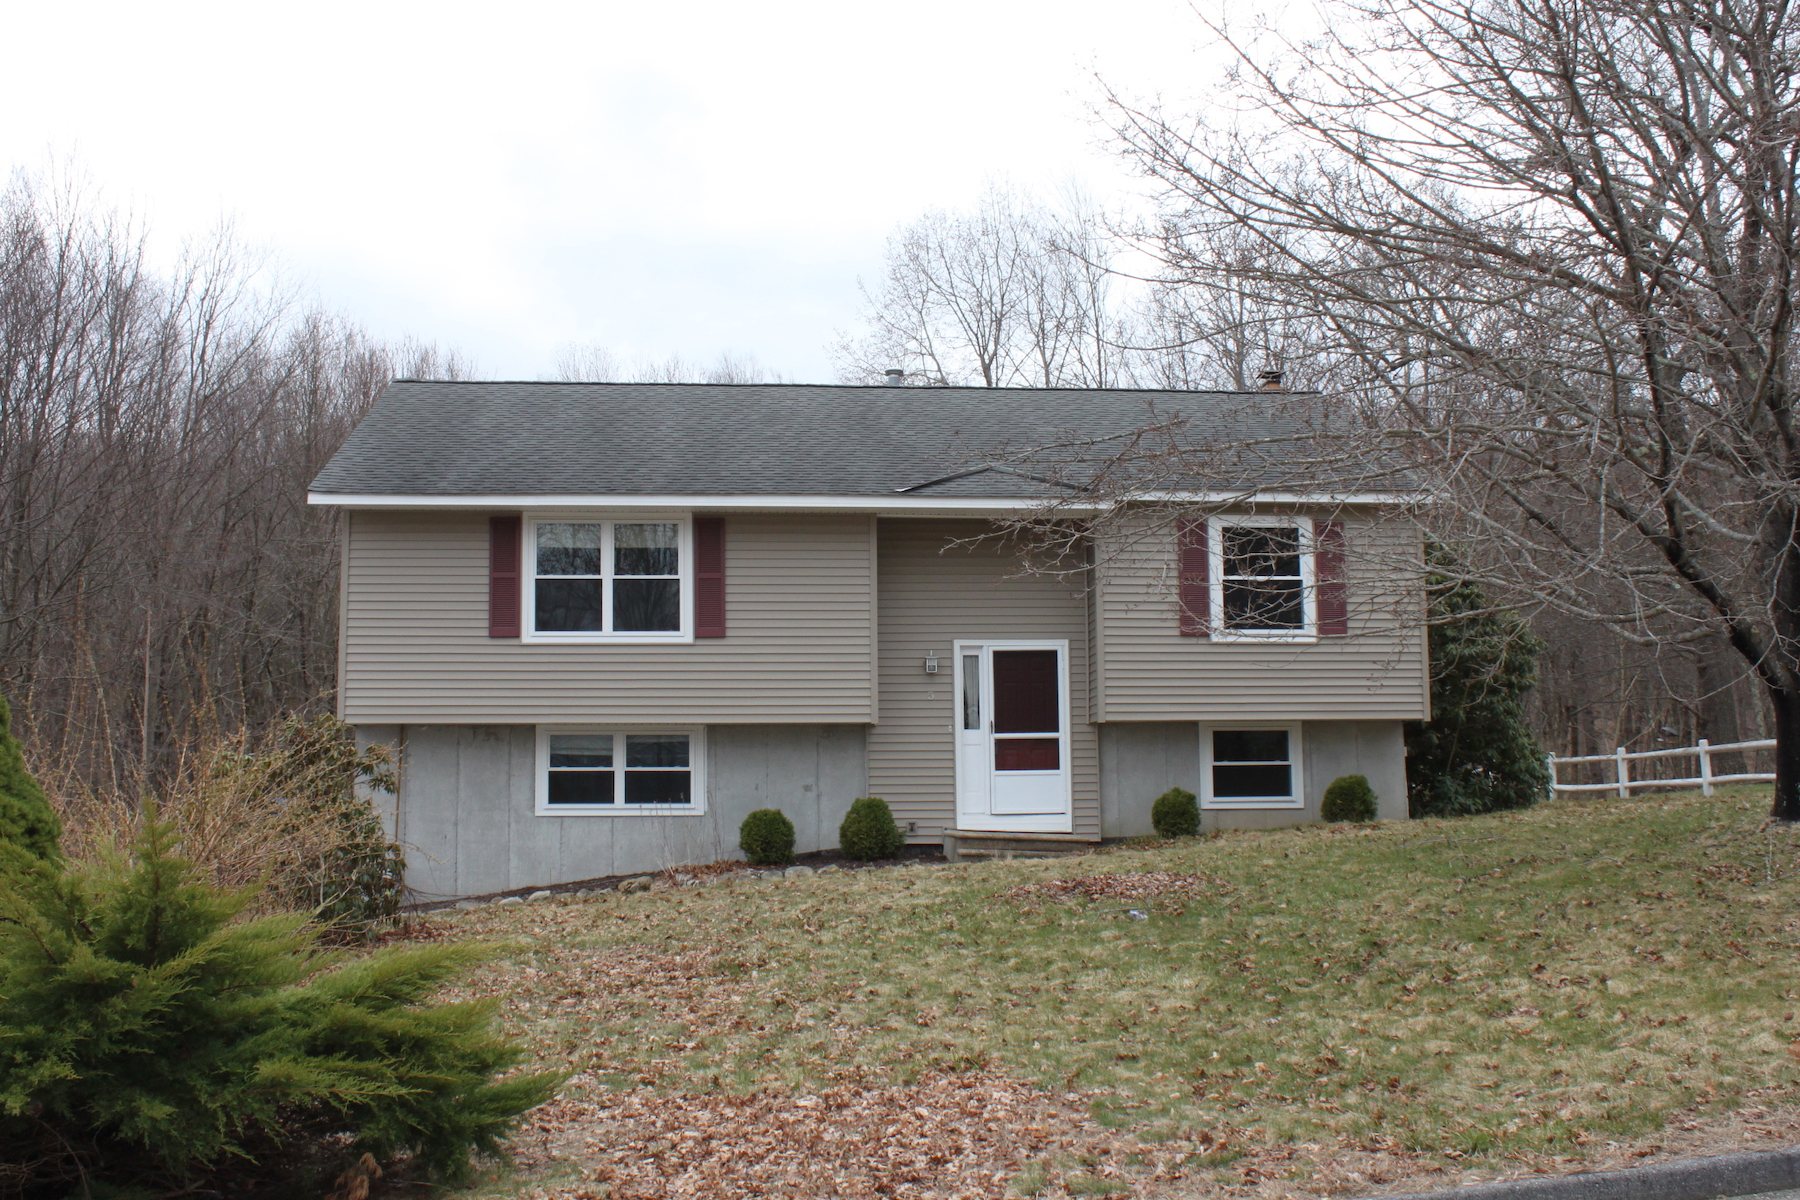 Single Family Home for Active at Amazing Updated Raised Ranch 5 Heather Hill Northbridge, Massachusetts 01588 United States